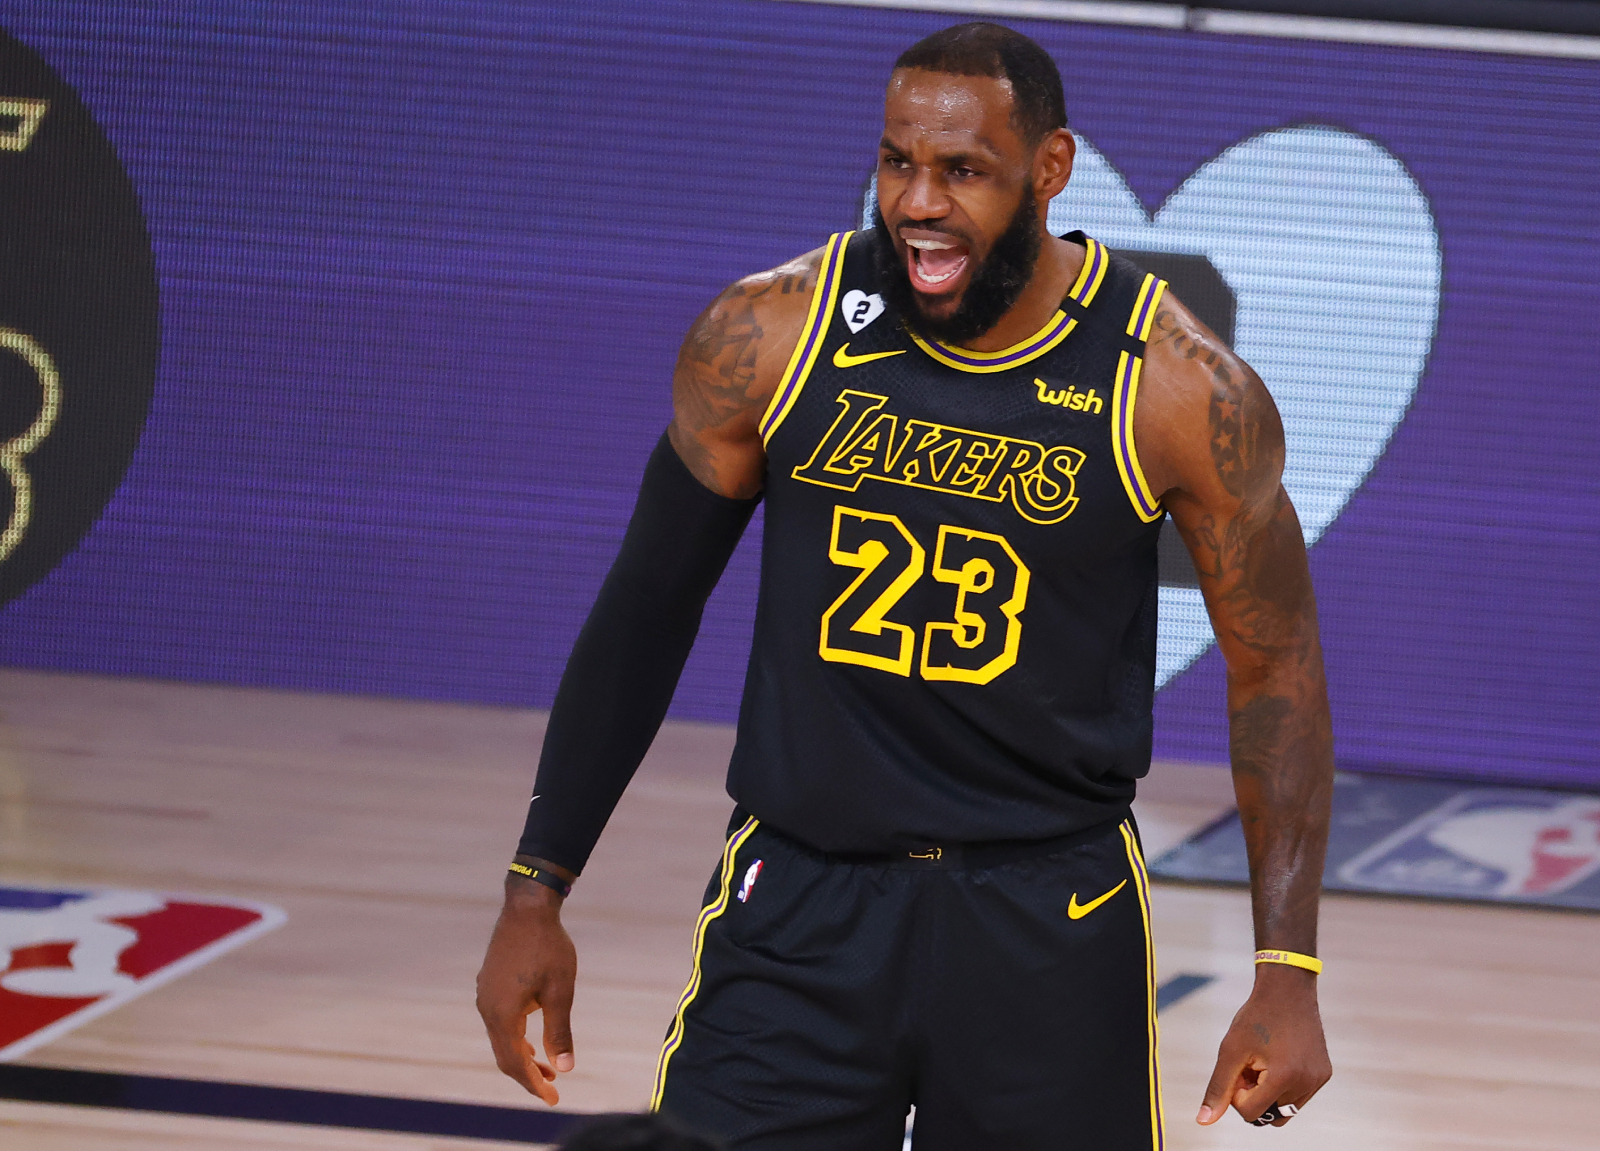 LeBron James has been unstoppable for the Lakers in his most recent playoff games. In fact, his former teammates are in awe of him.